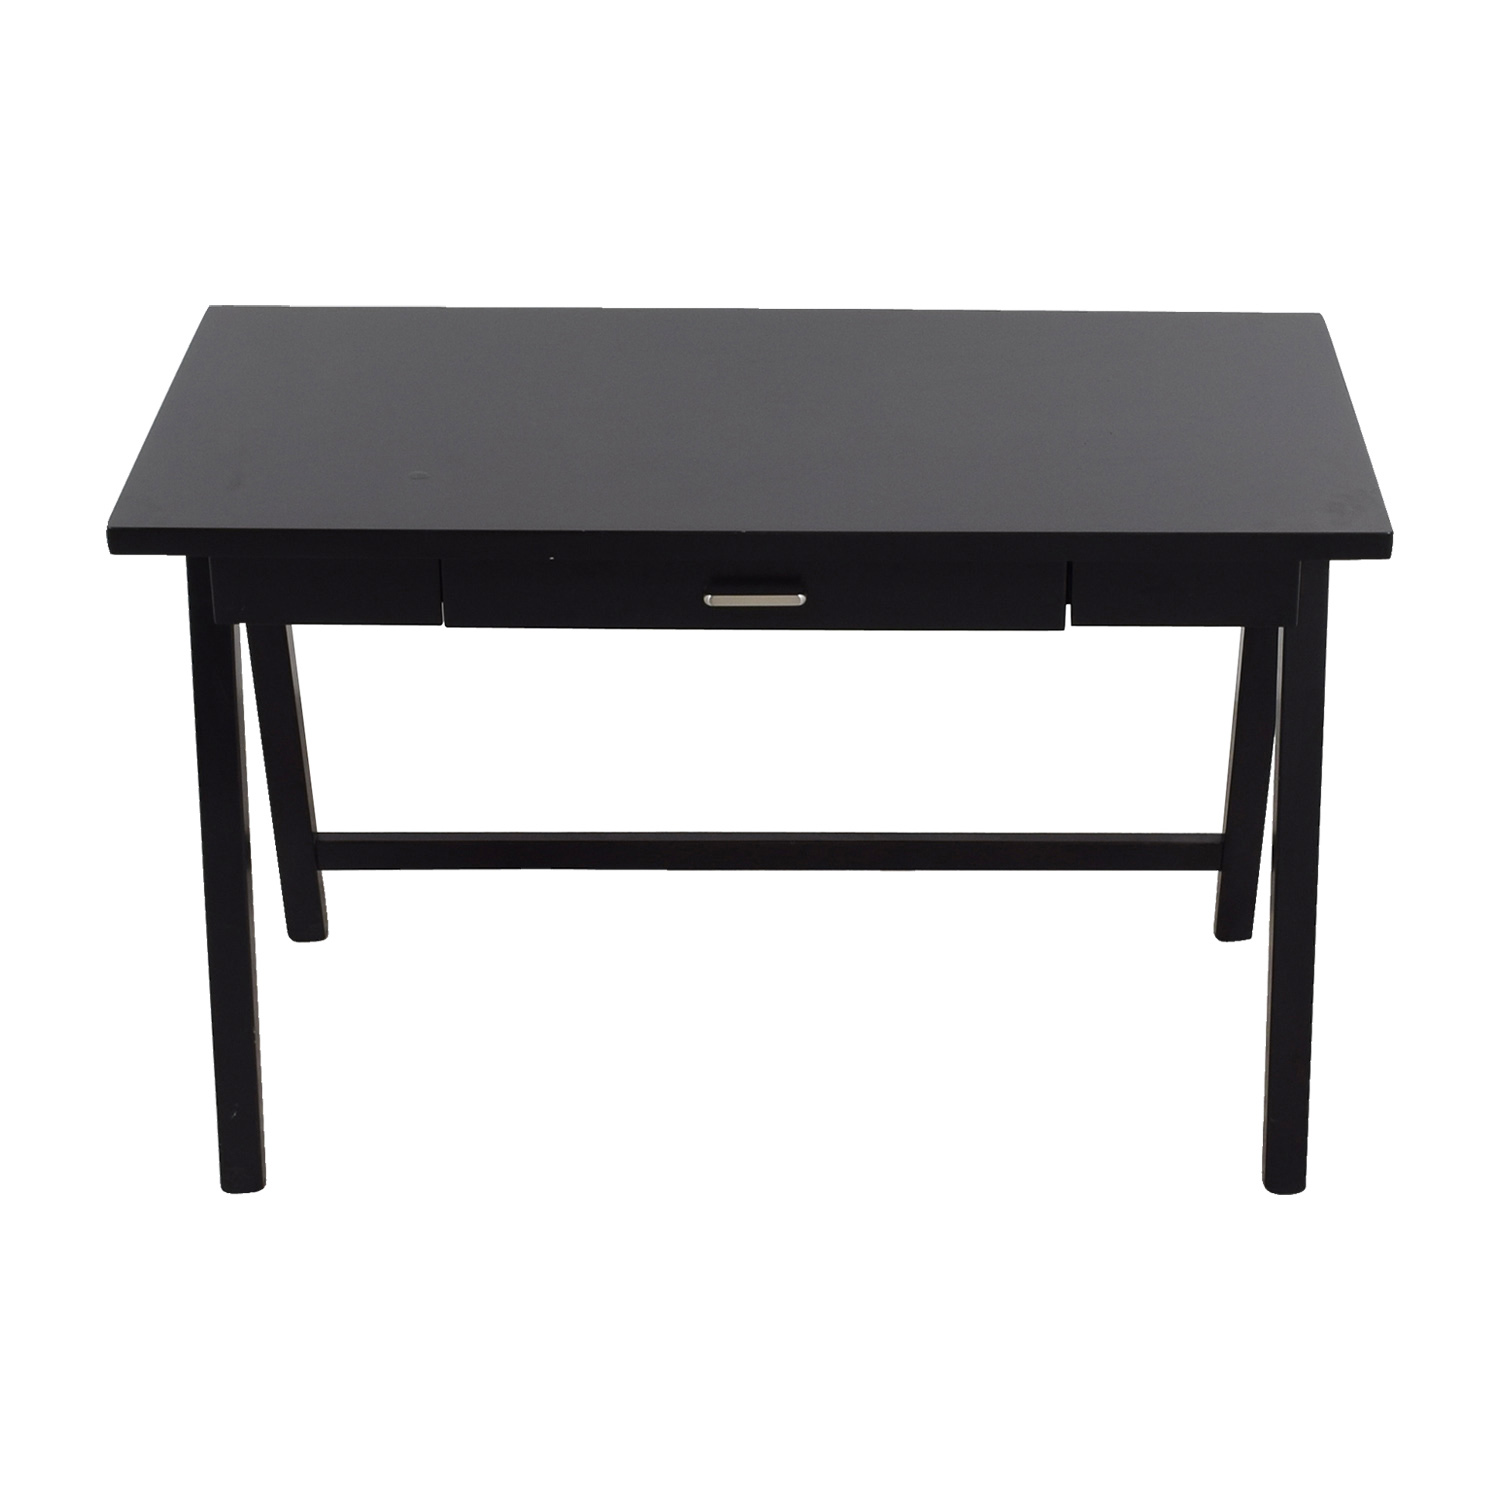 82% OFF - Ashley Furniture Ashley Furniture Single Drawer Desk / Tables